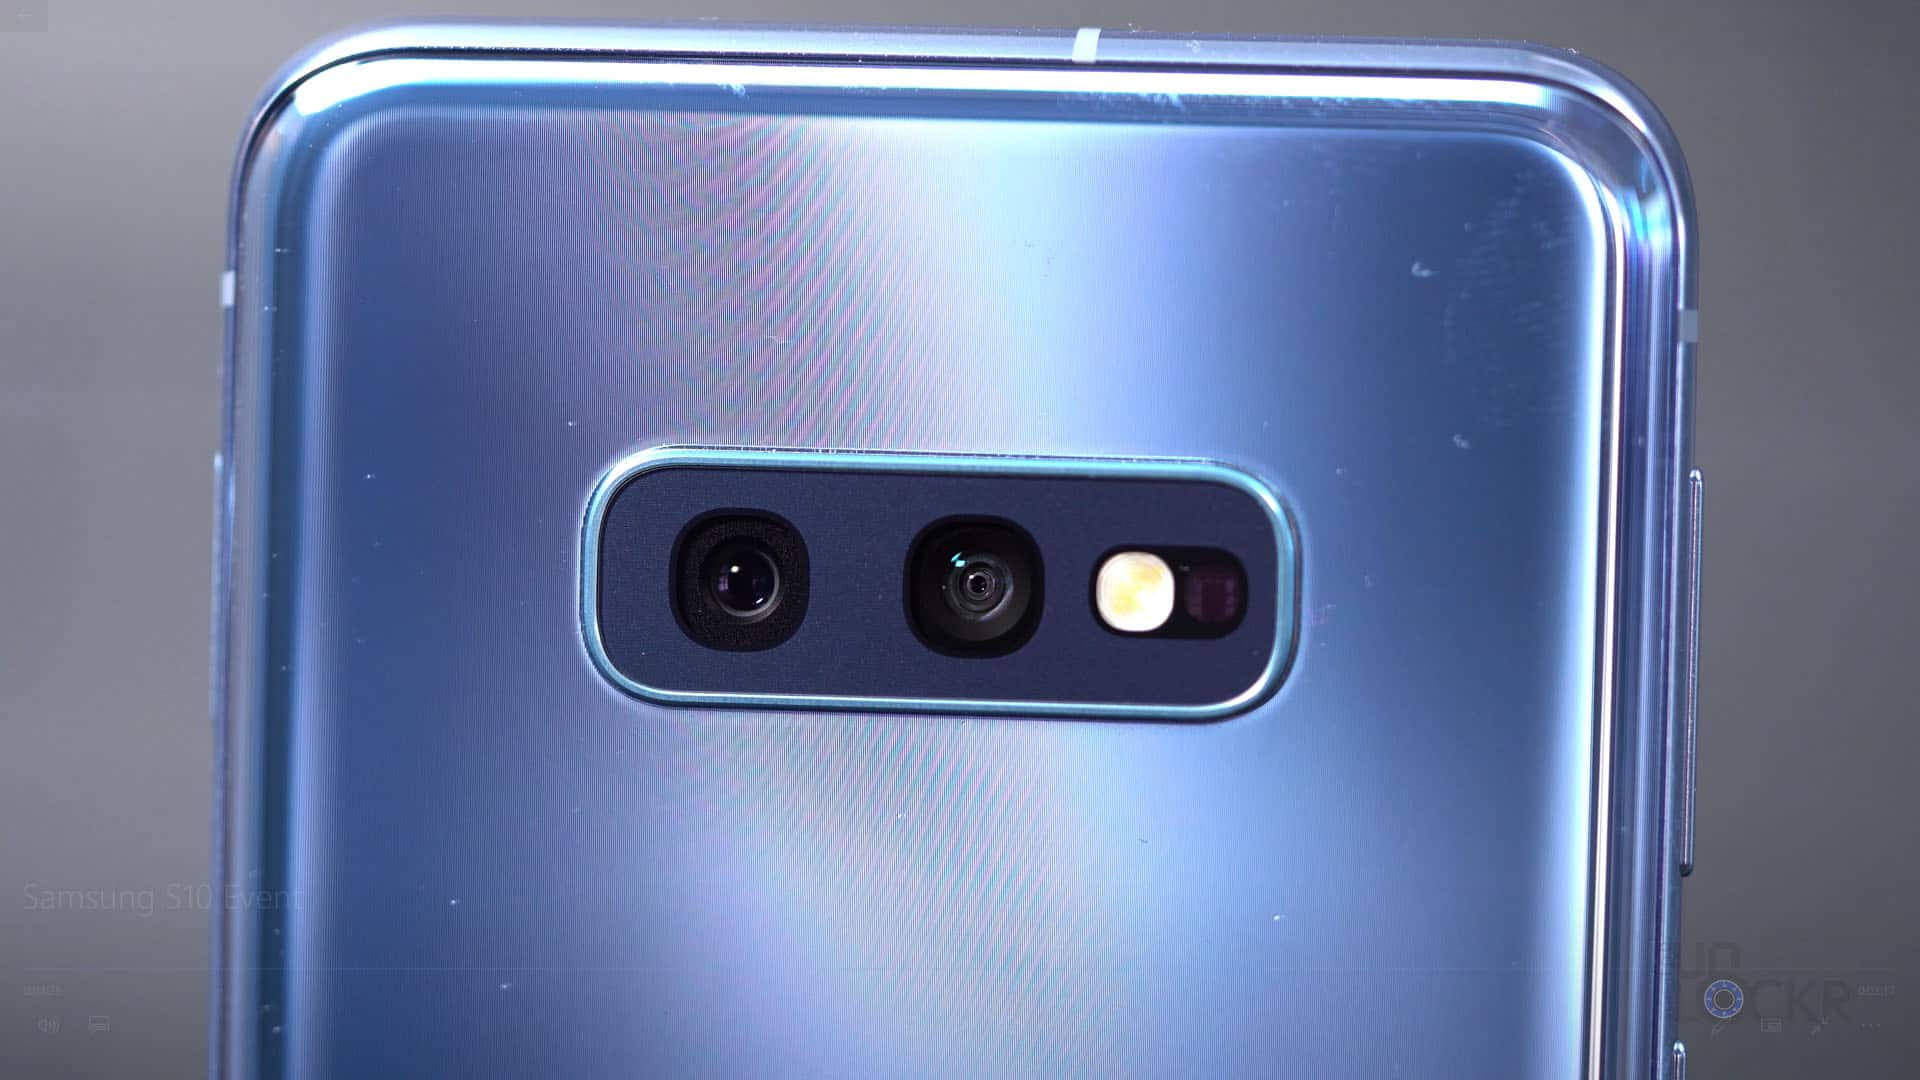 Samsung Galaxy S10, S10 Plus, S10e and S10 5G: All You Need